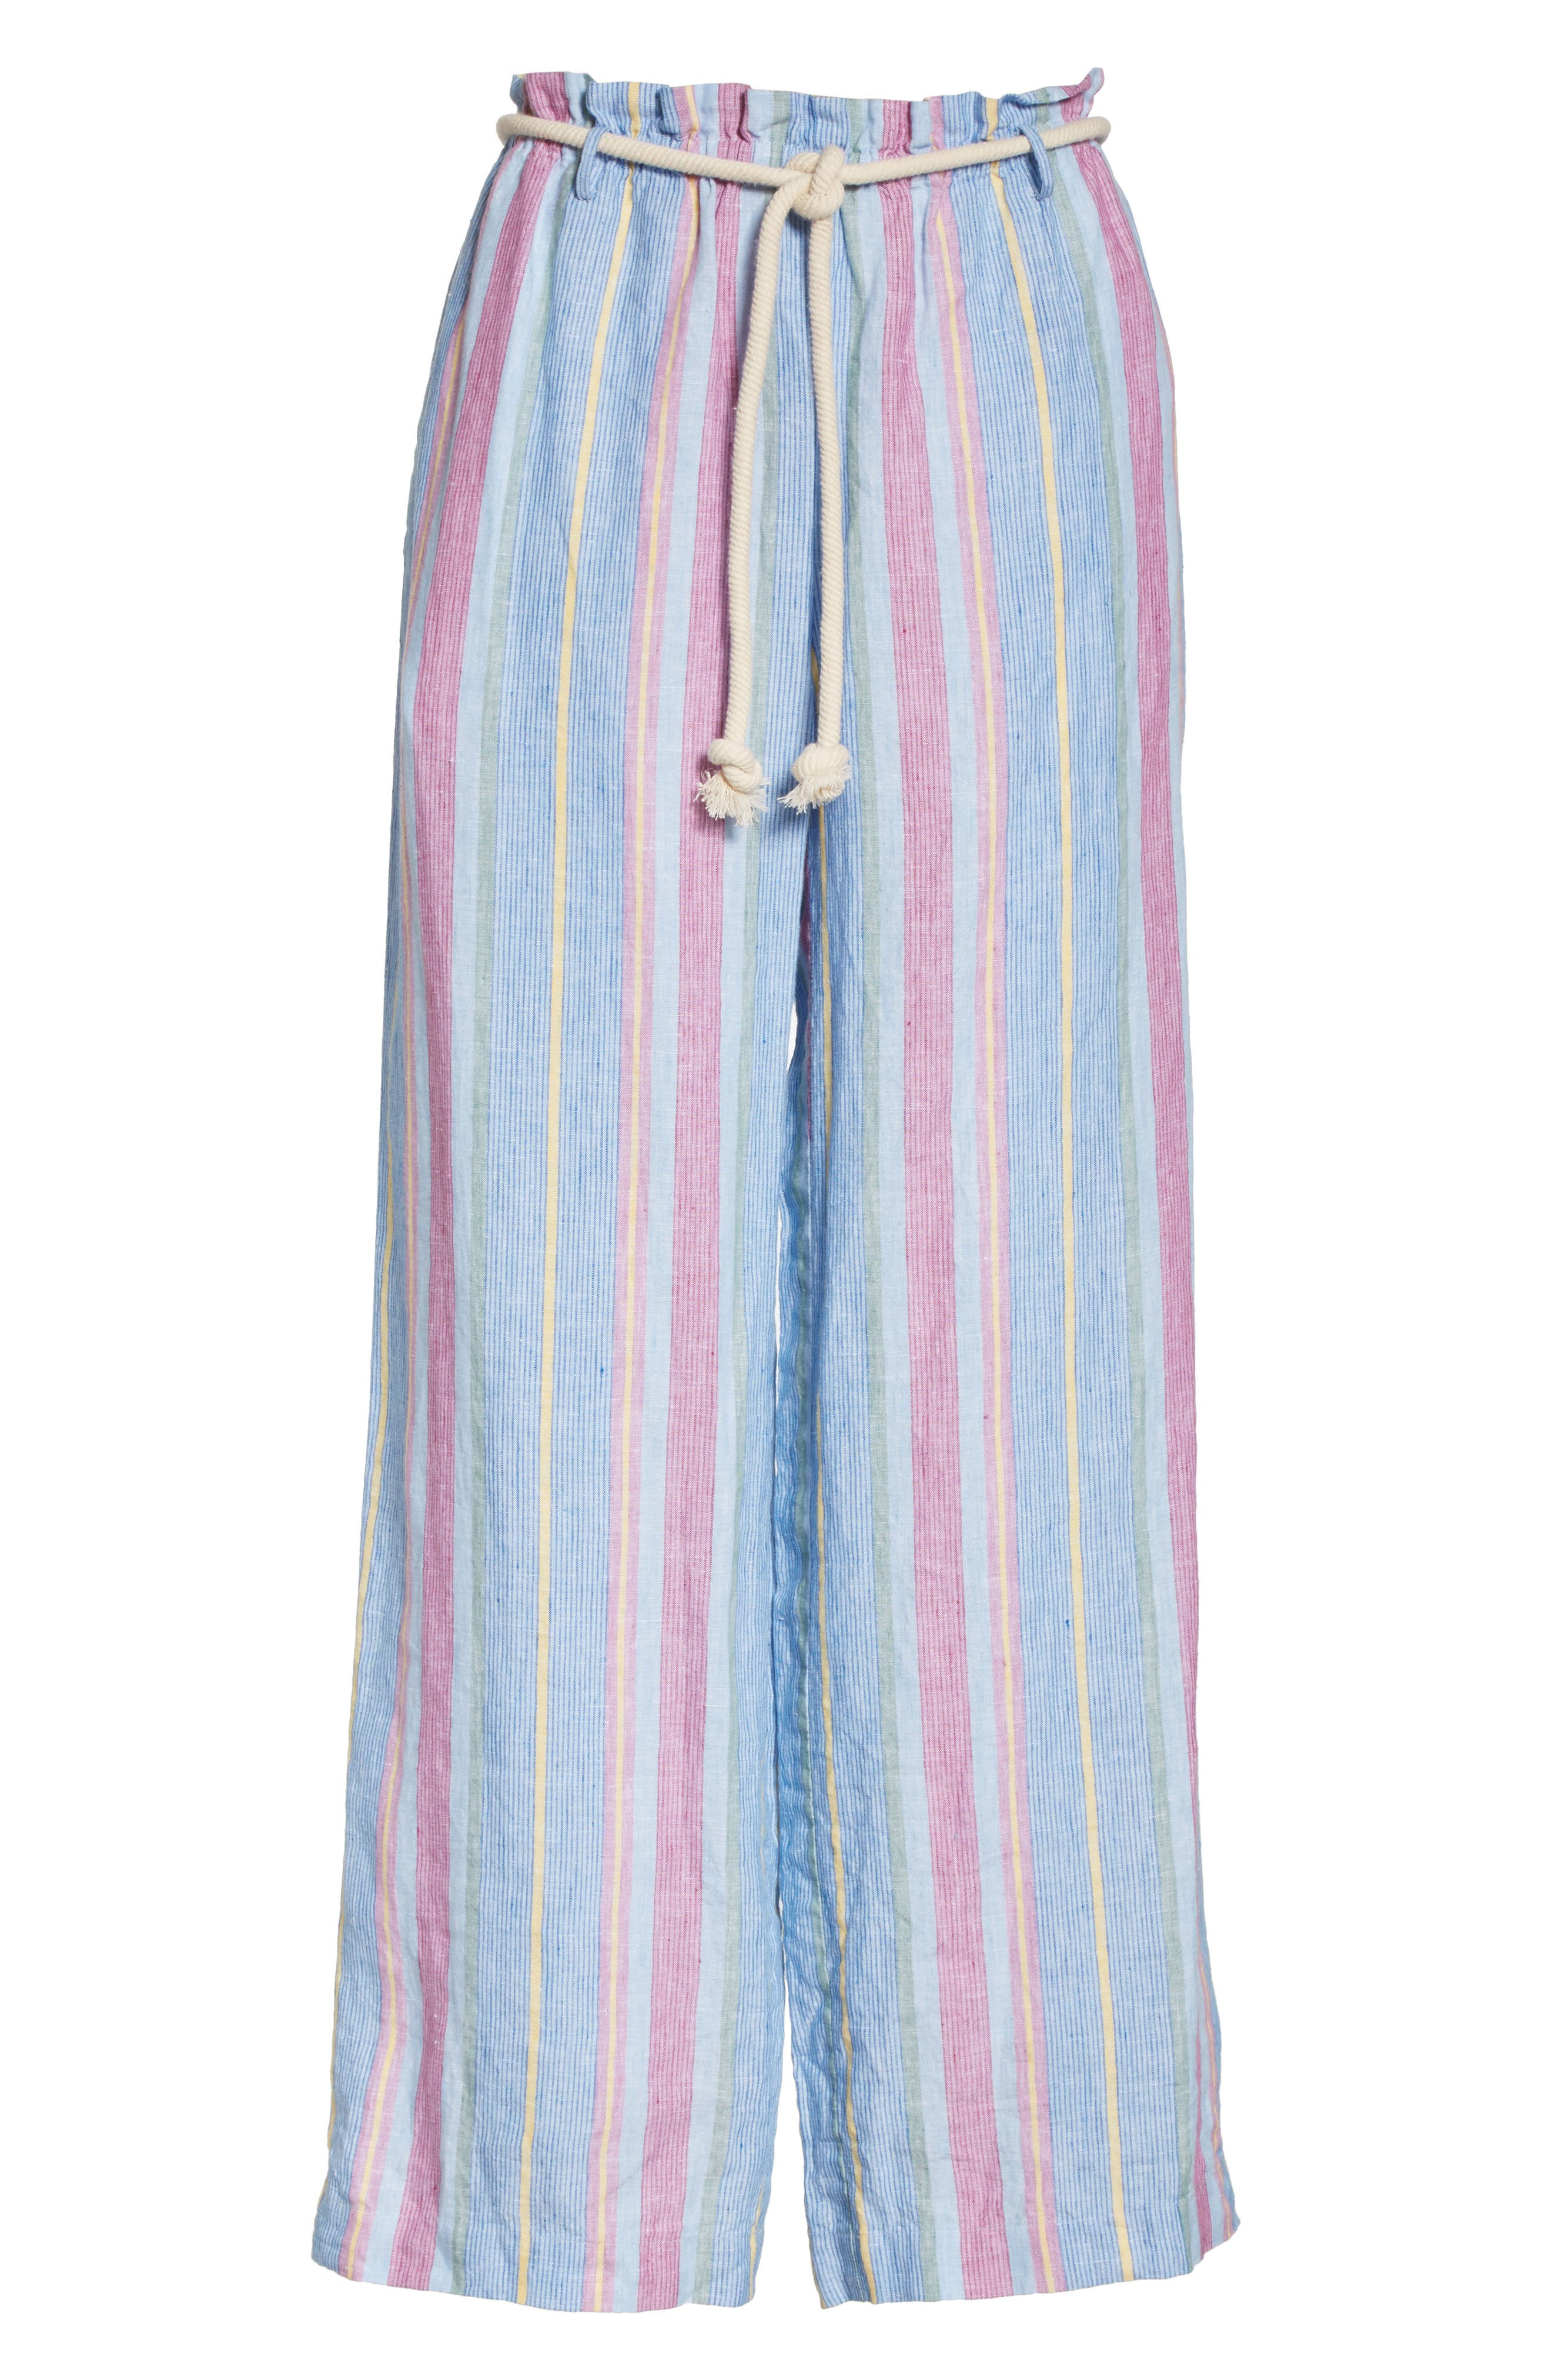 Easy Stripe Linen Pants,                             Alternate thumbnail 8, color,                             Purple Multi